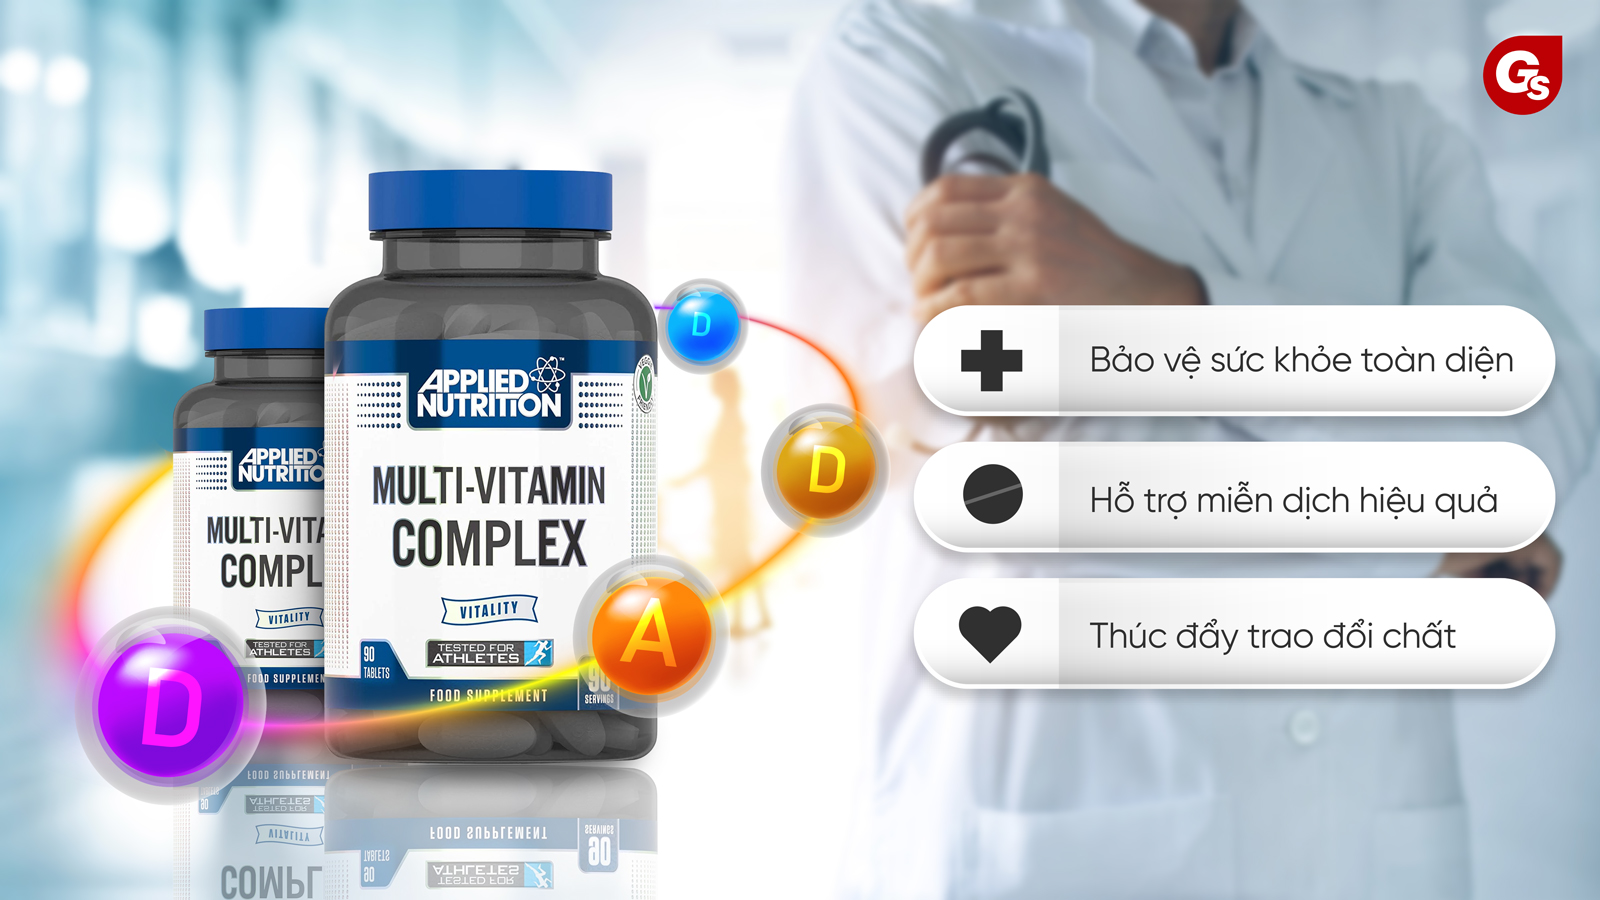 MULTIVITAMIN-COMPLEX-APPLIED-NUTRITION-vitamin-tong-hop-toan-dien-gymstore